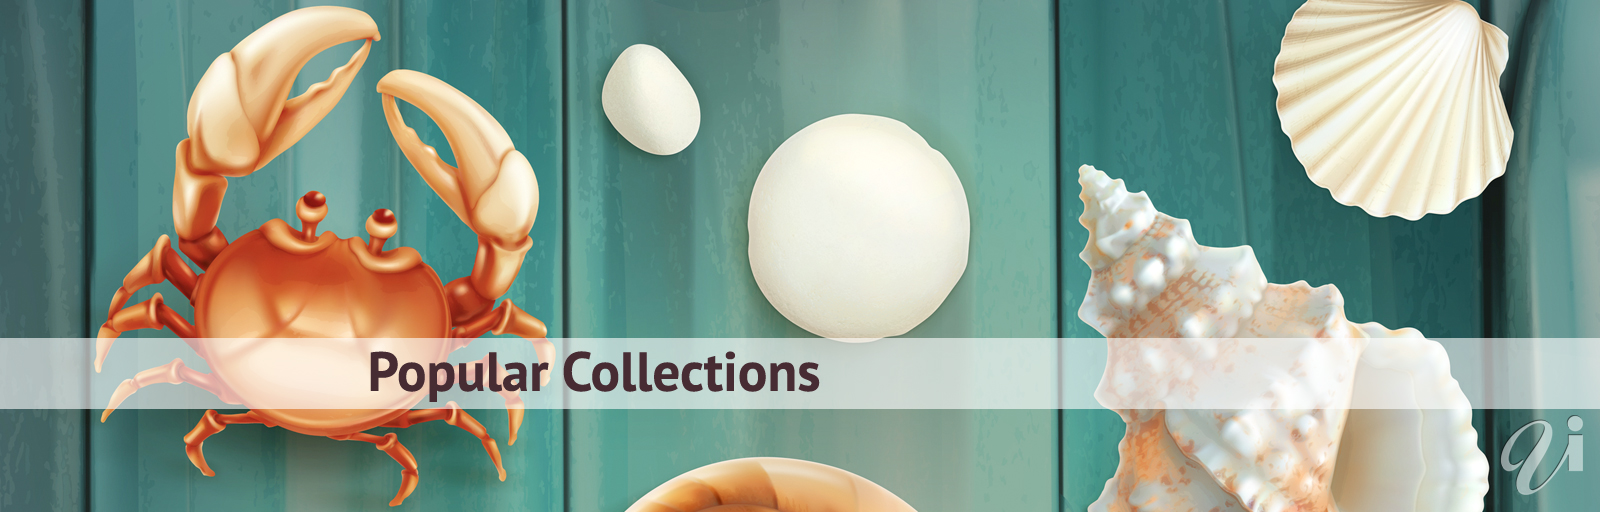 Popular Collections